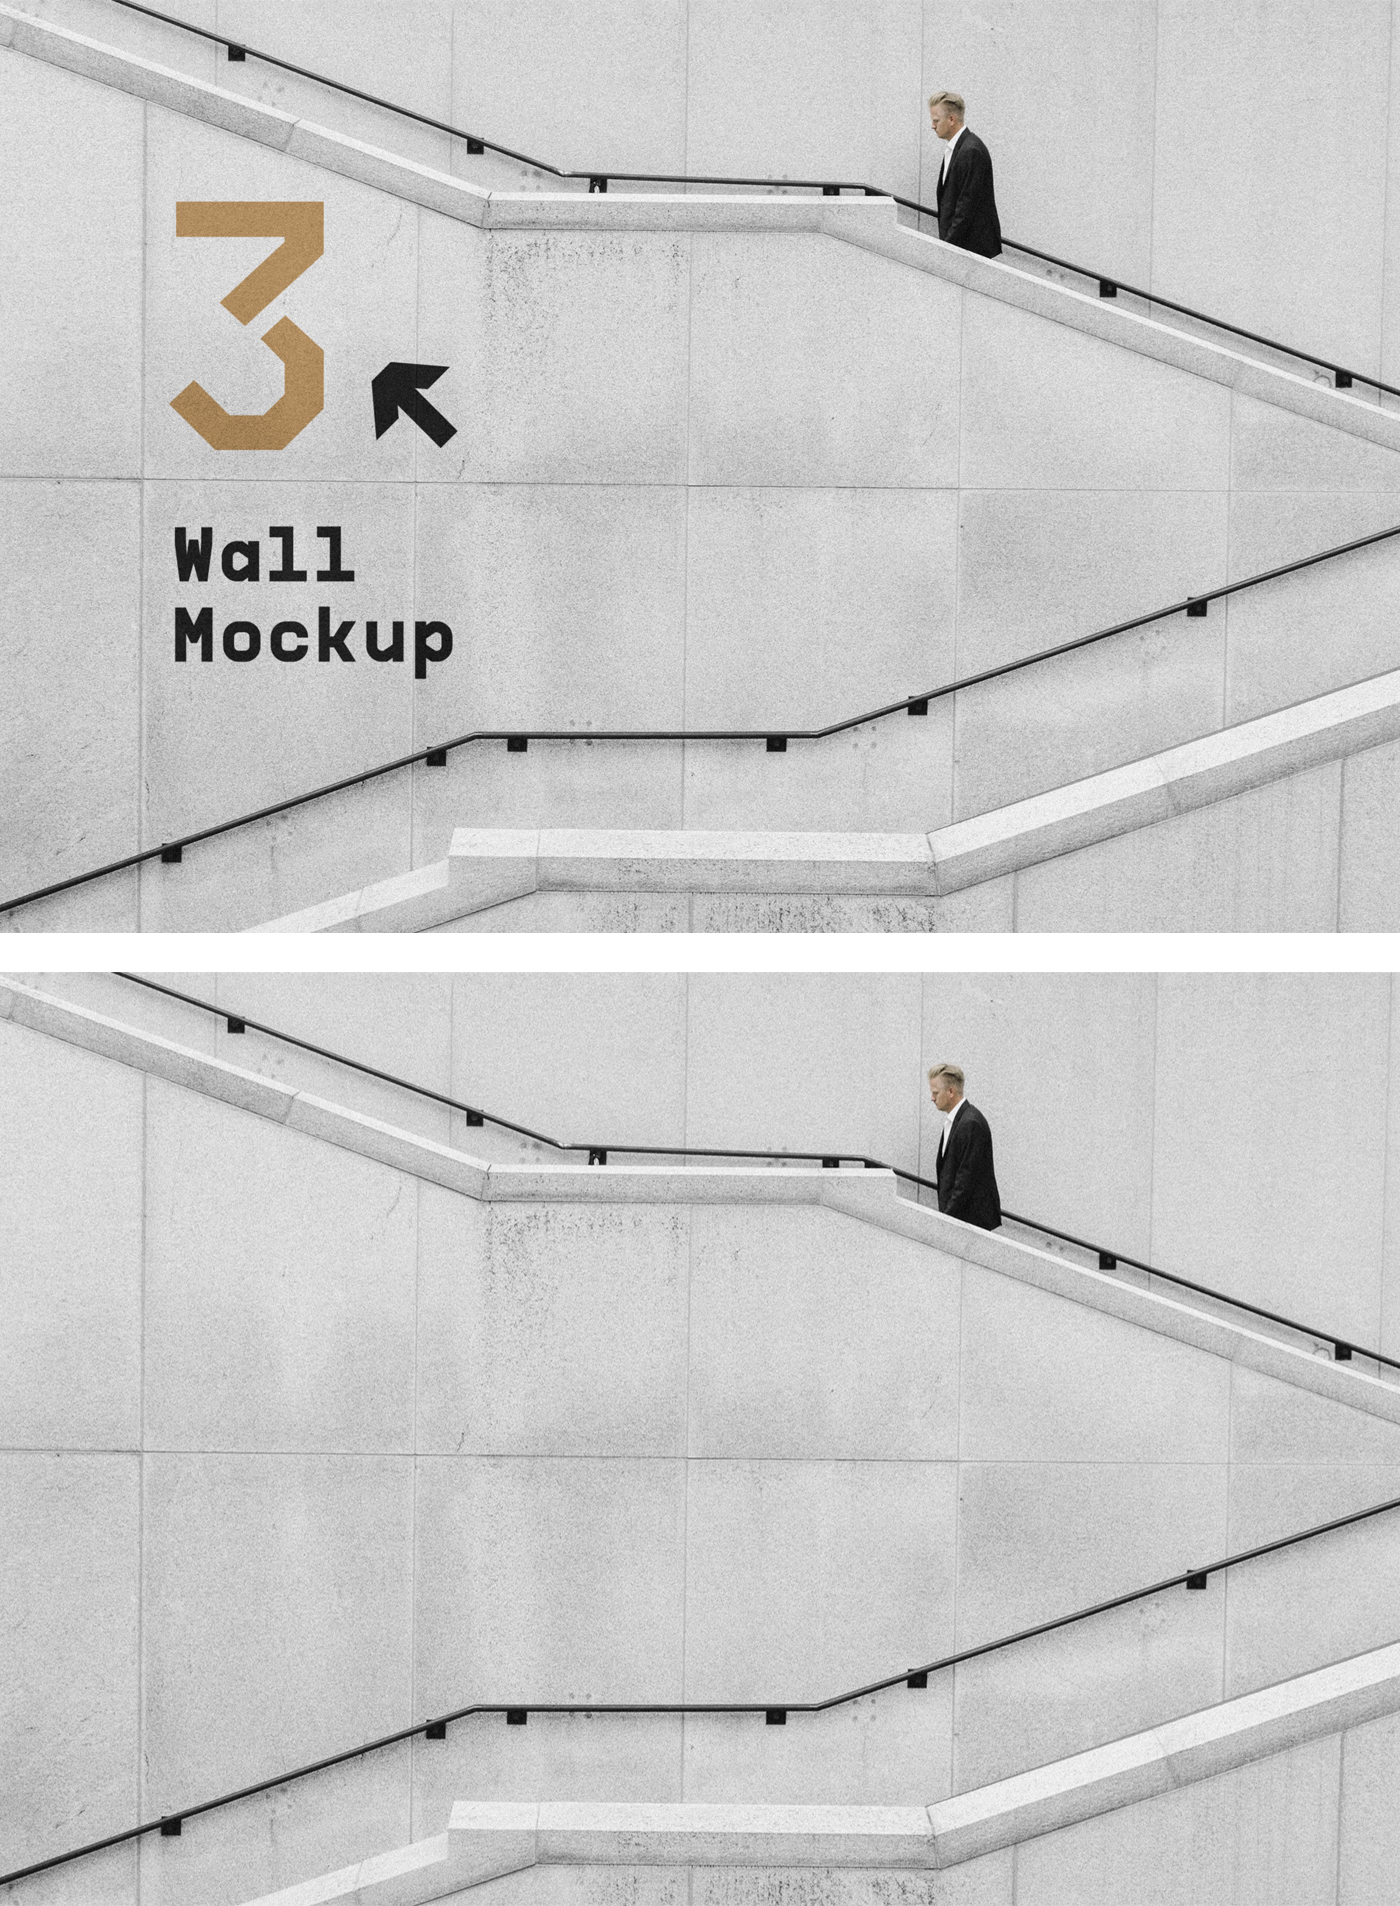 Wall with Stairs Mockup